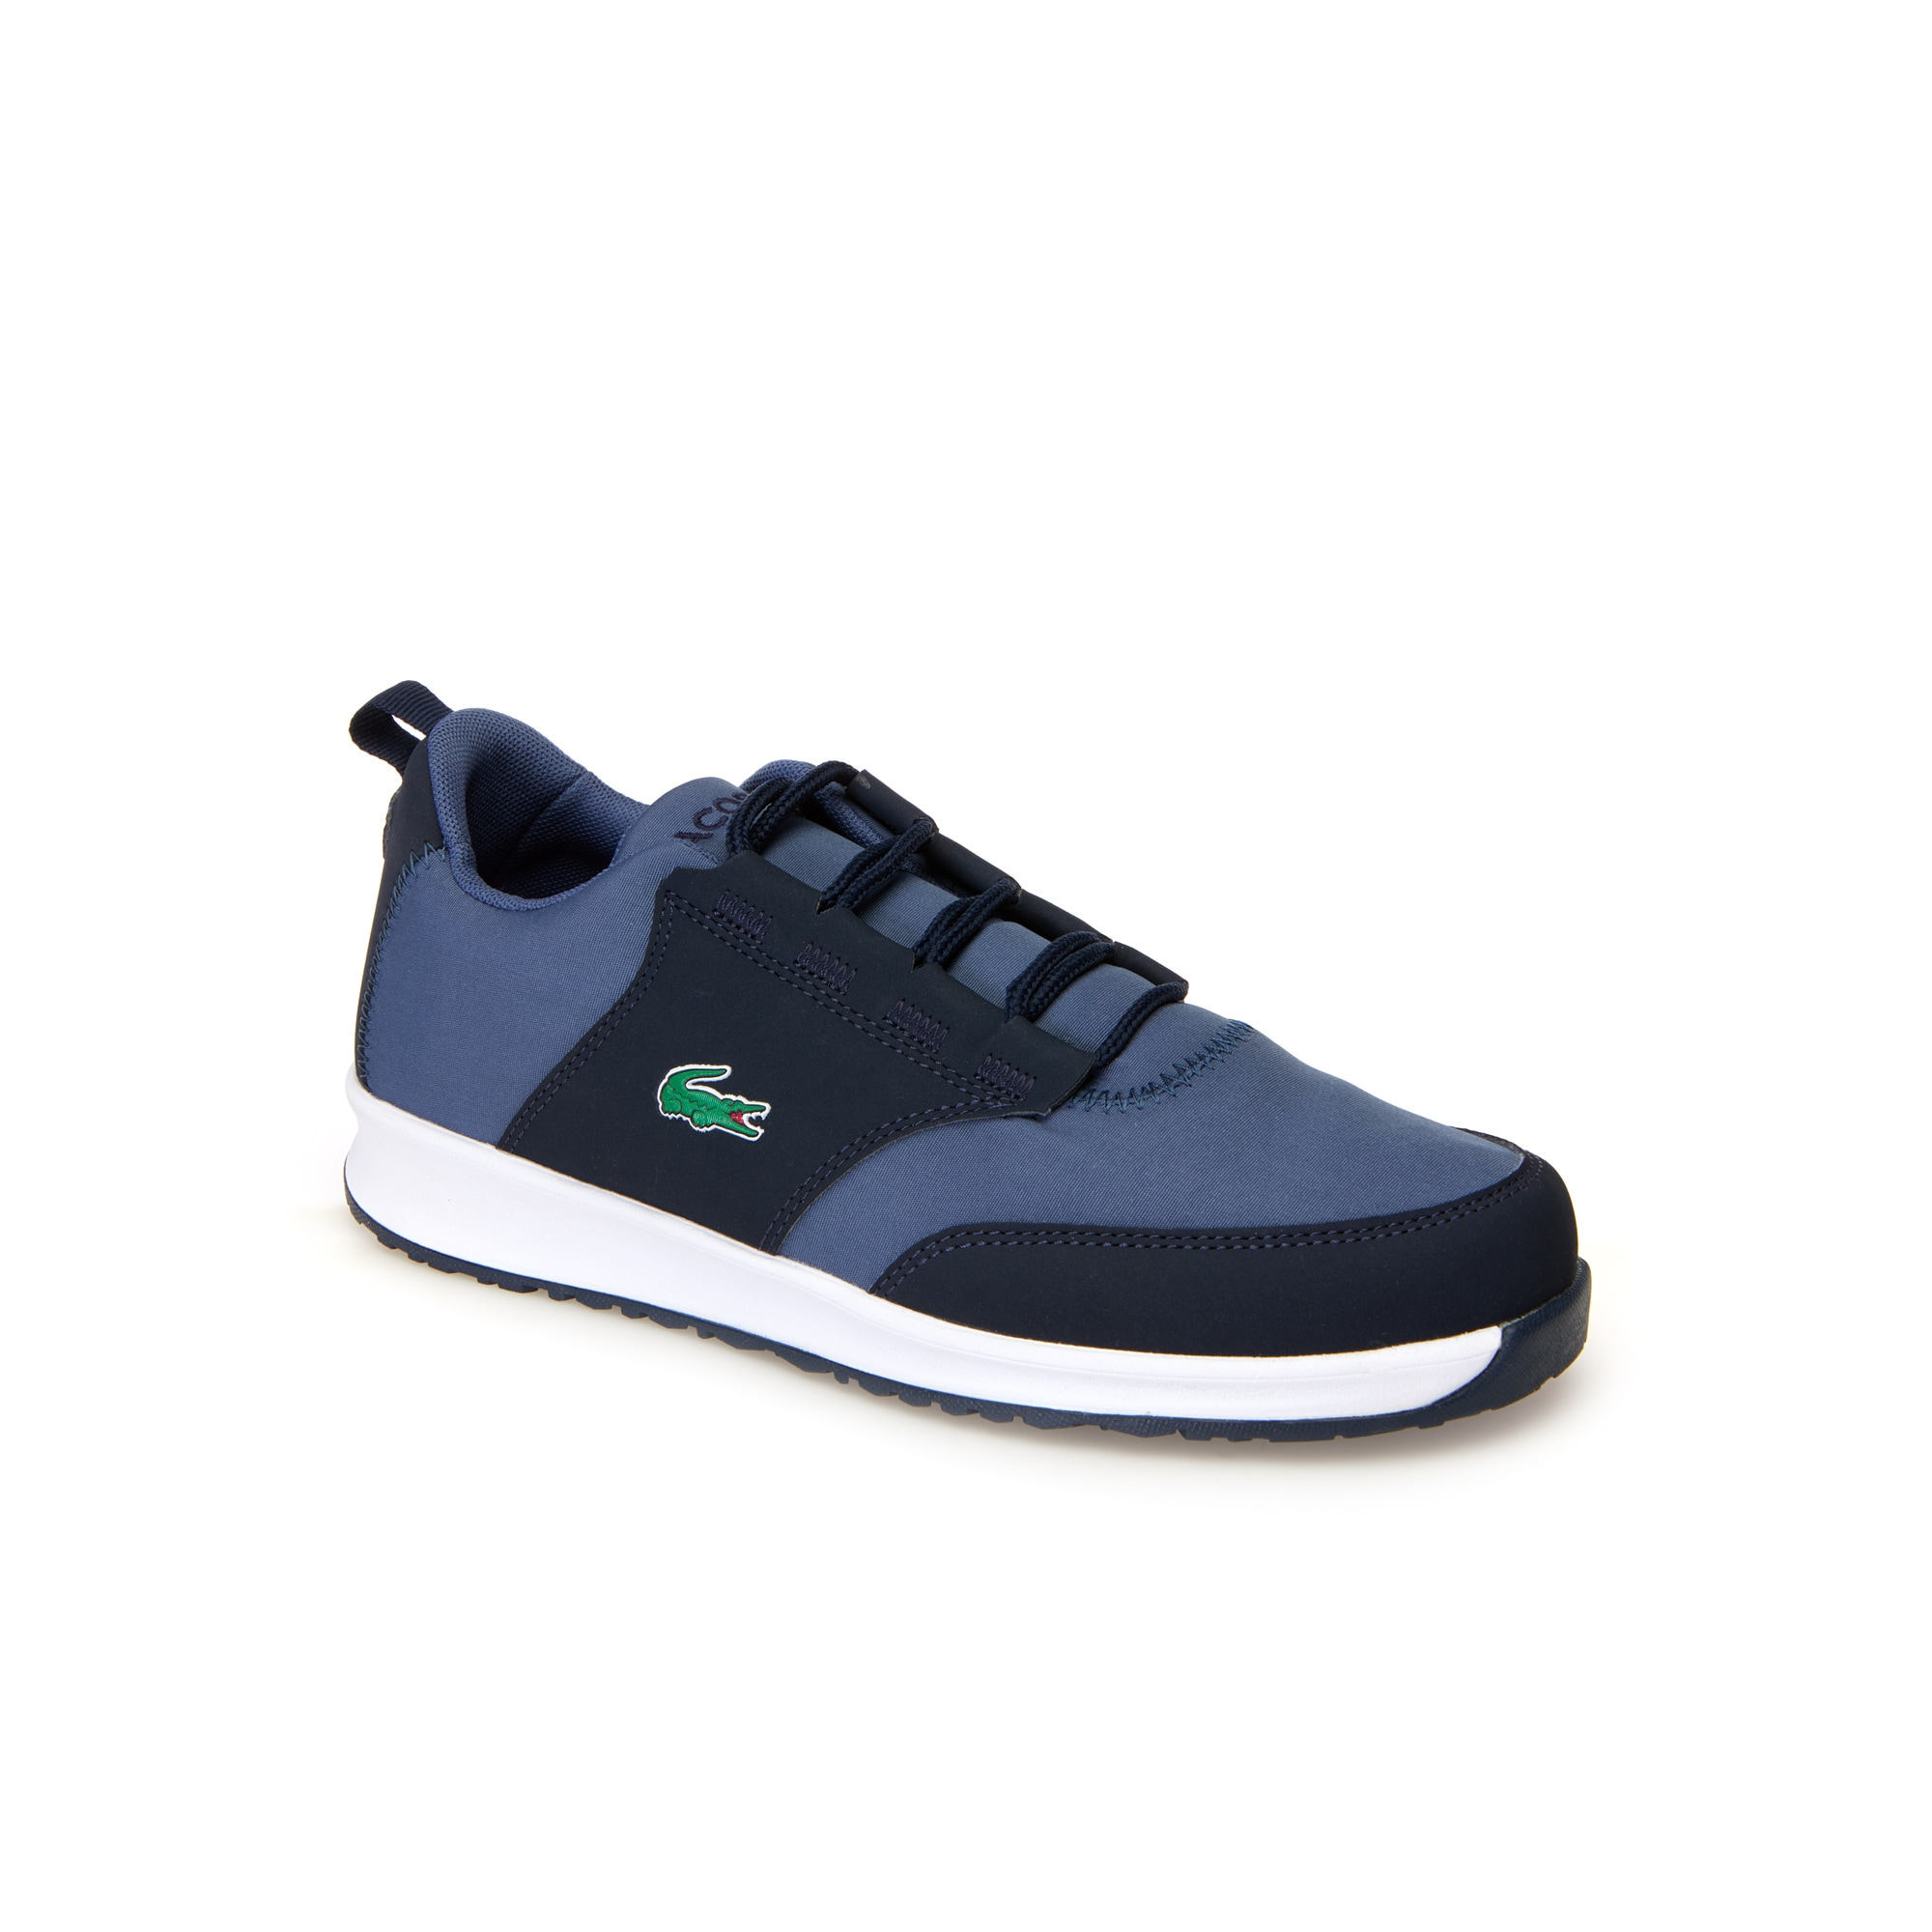 Teen-Sneakers L.IGHT aus Textil und Synthetik